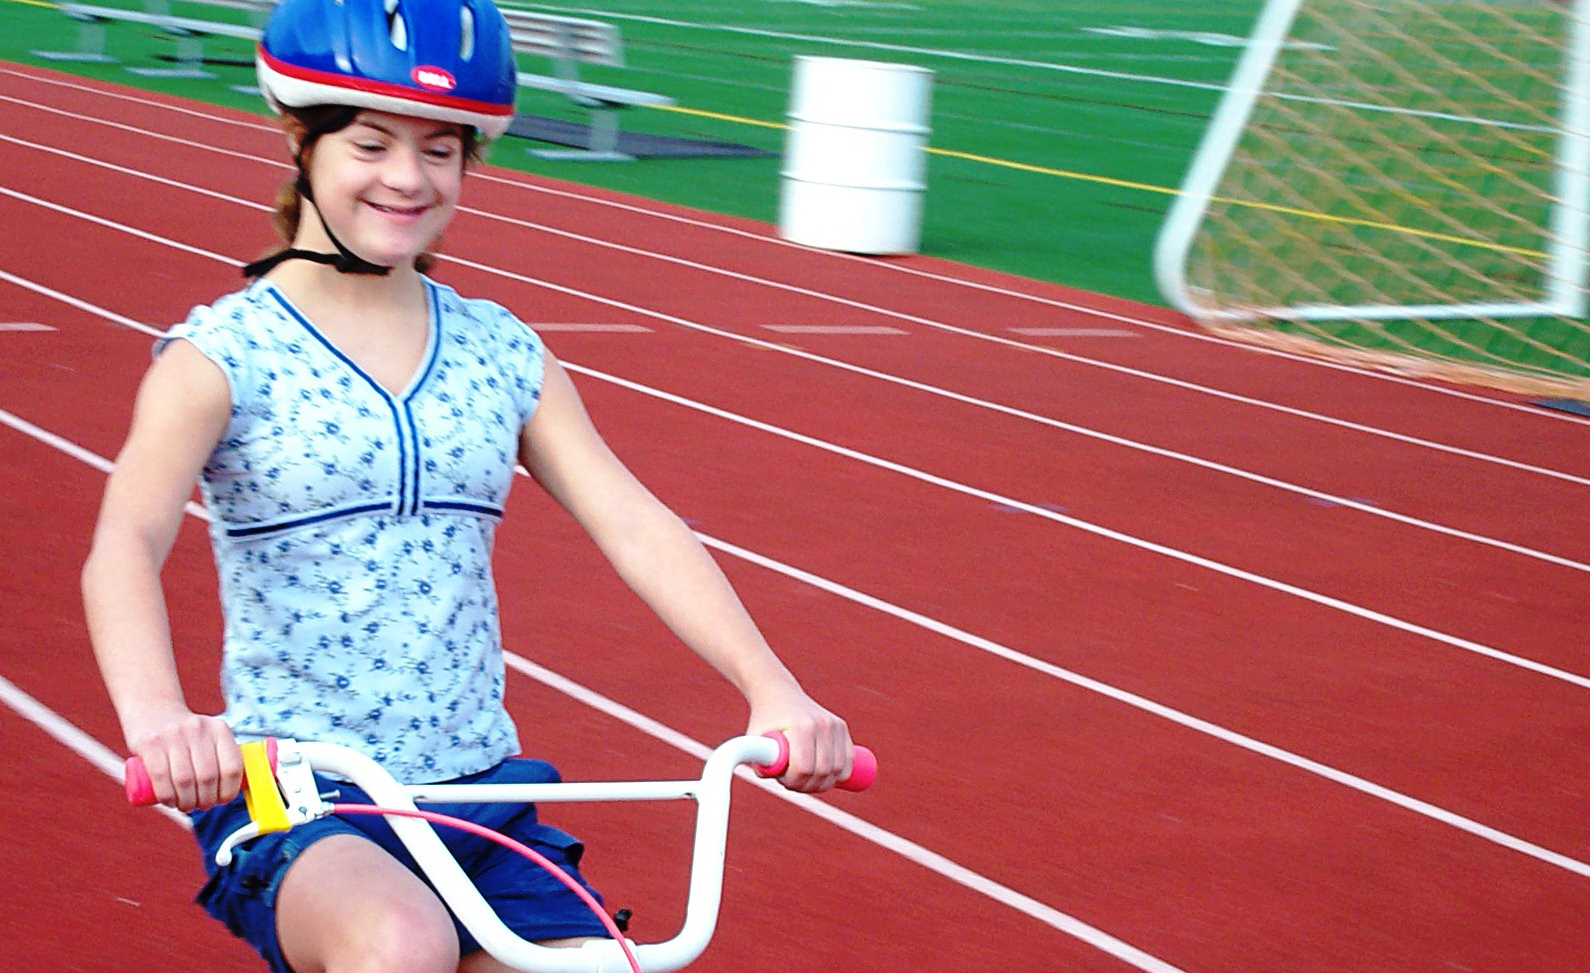 University of Michigan School of Kinesiology bike camp participant Bridget Richards zooms around happily on her two-wheel bike. Richards was part of the 'bike camp' study conducted by U-M Kinesiology. The study looked at the feasibility and benefit of teaching children with Down syndrome to ride two-wheel bikes. U-M Kinesiology teamed with the nonprofit group Lose the Training Wheels, which provided the specially designed bikes and the individualized training. The majority of participants learned to ride after five consecutive days of 75 minute individualized training sessions. Photo courtesy of Greg and Mary Anne Richards